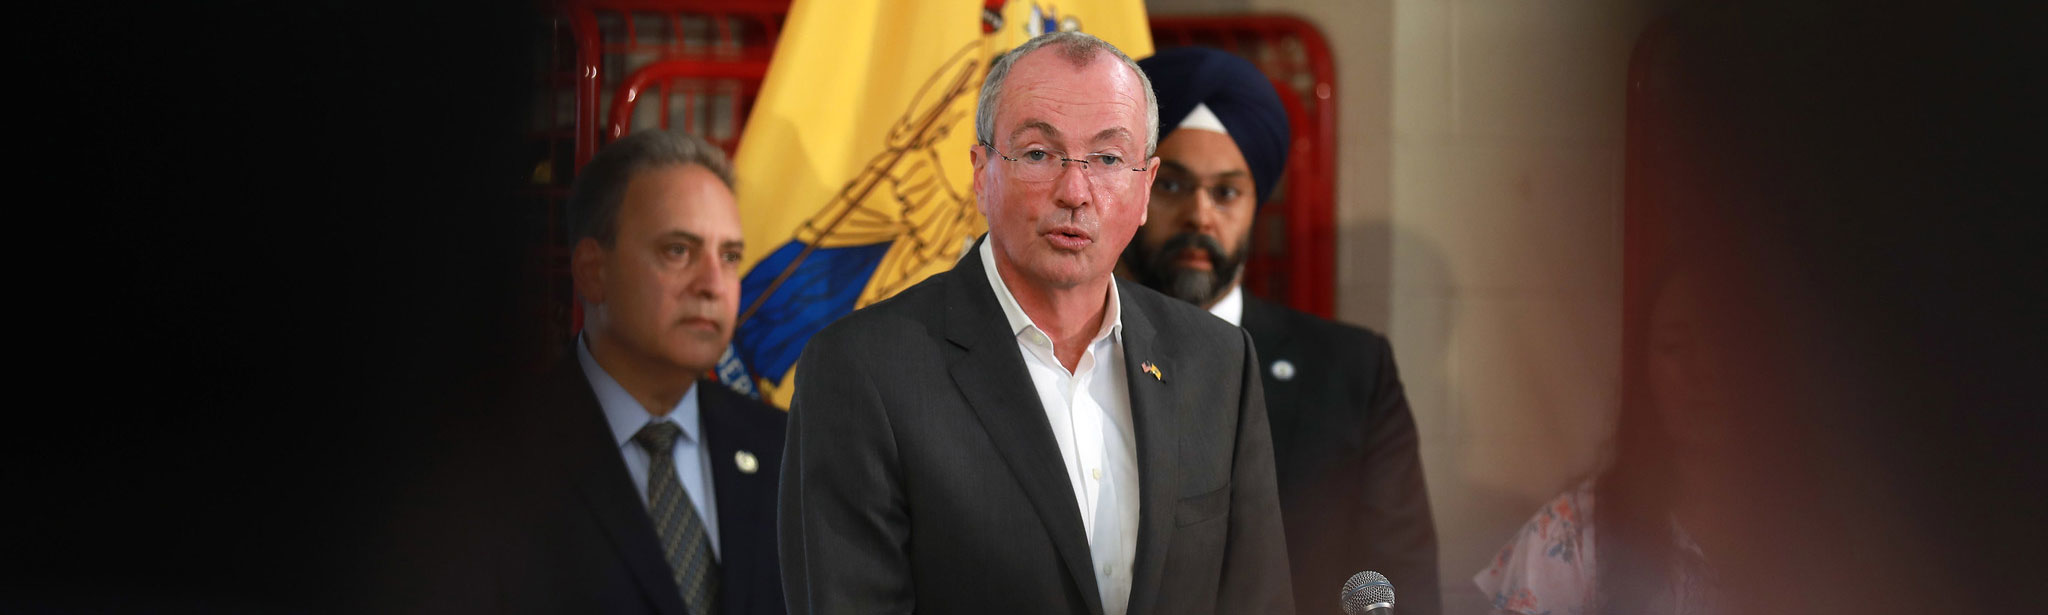 Governor Phil Murphy speakind,  Attorney General Gurbir standing in the background